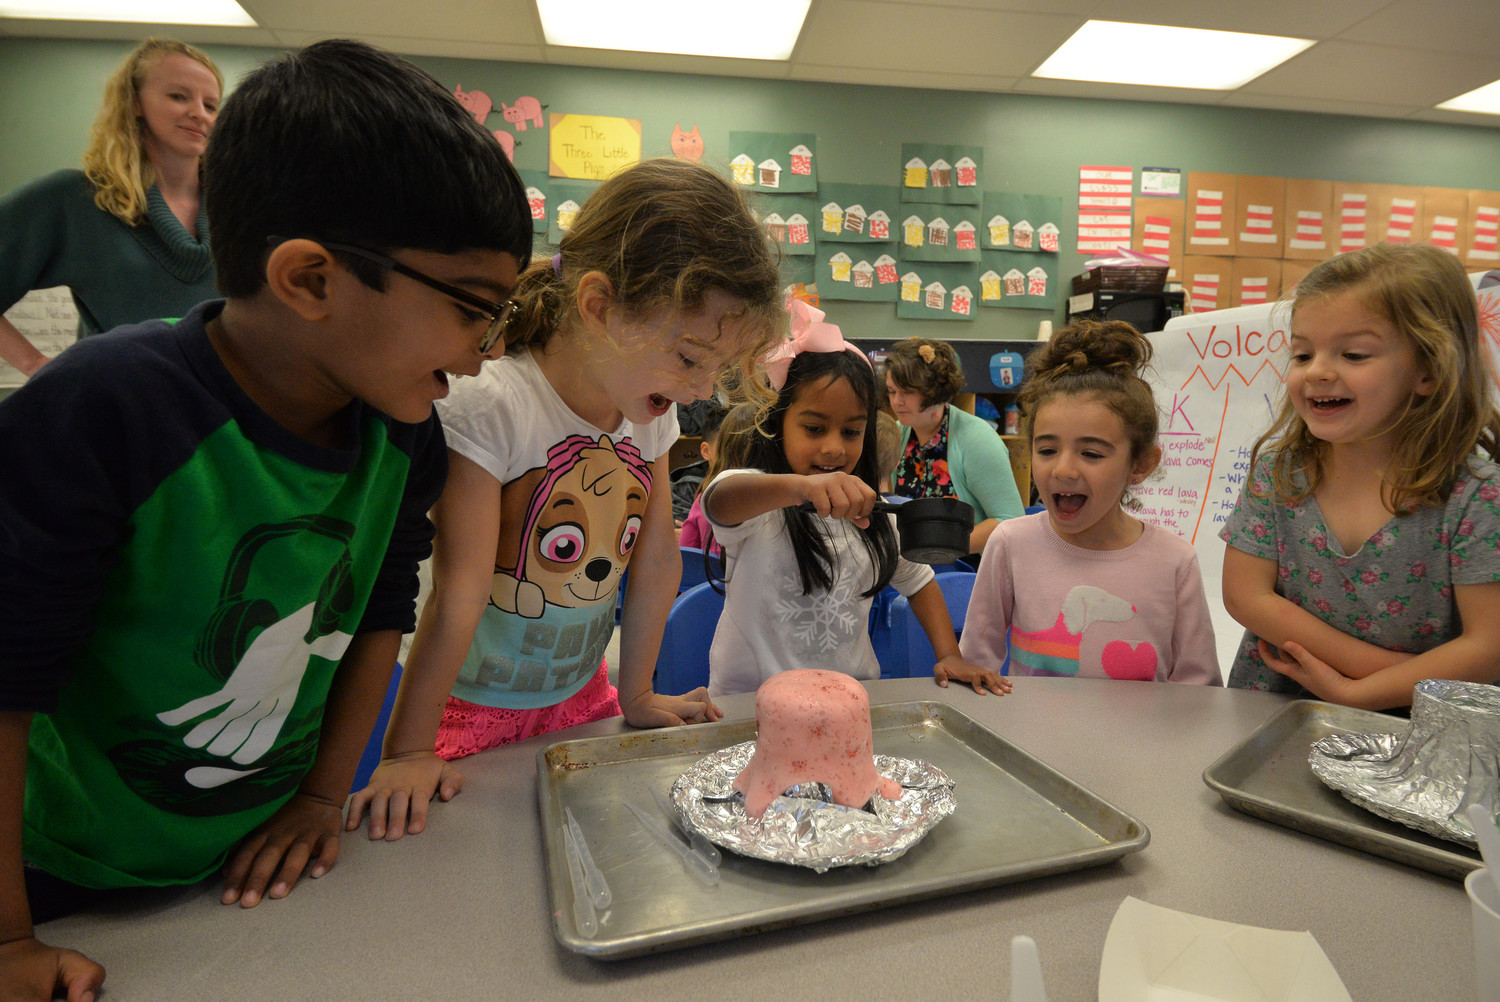 Awestruck students observe a re-creation of a volcano erupting using vinegar, baking soda, and food coloring.